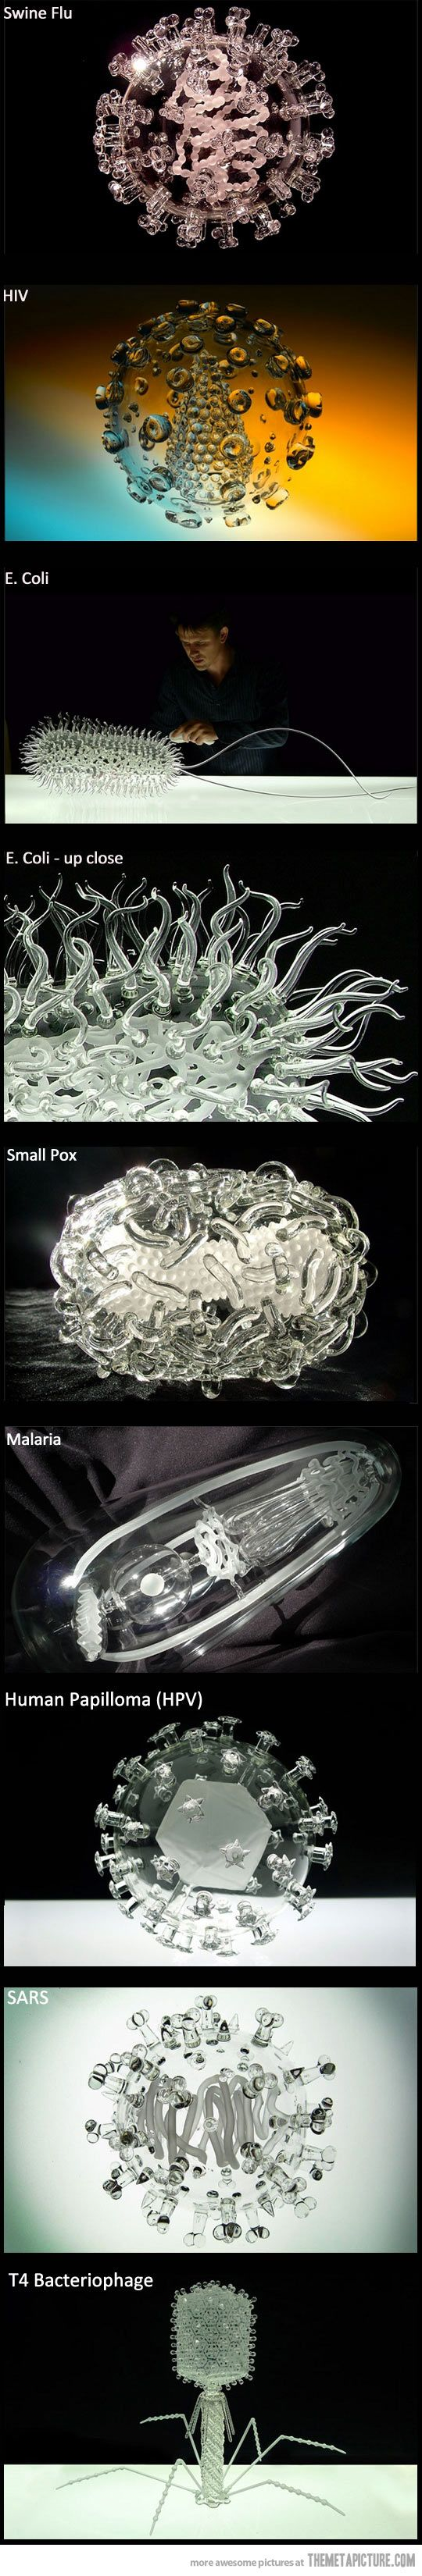 Glass replicas of harmful viruses… these are way awesome! I want them for my house!